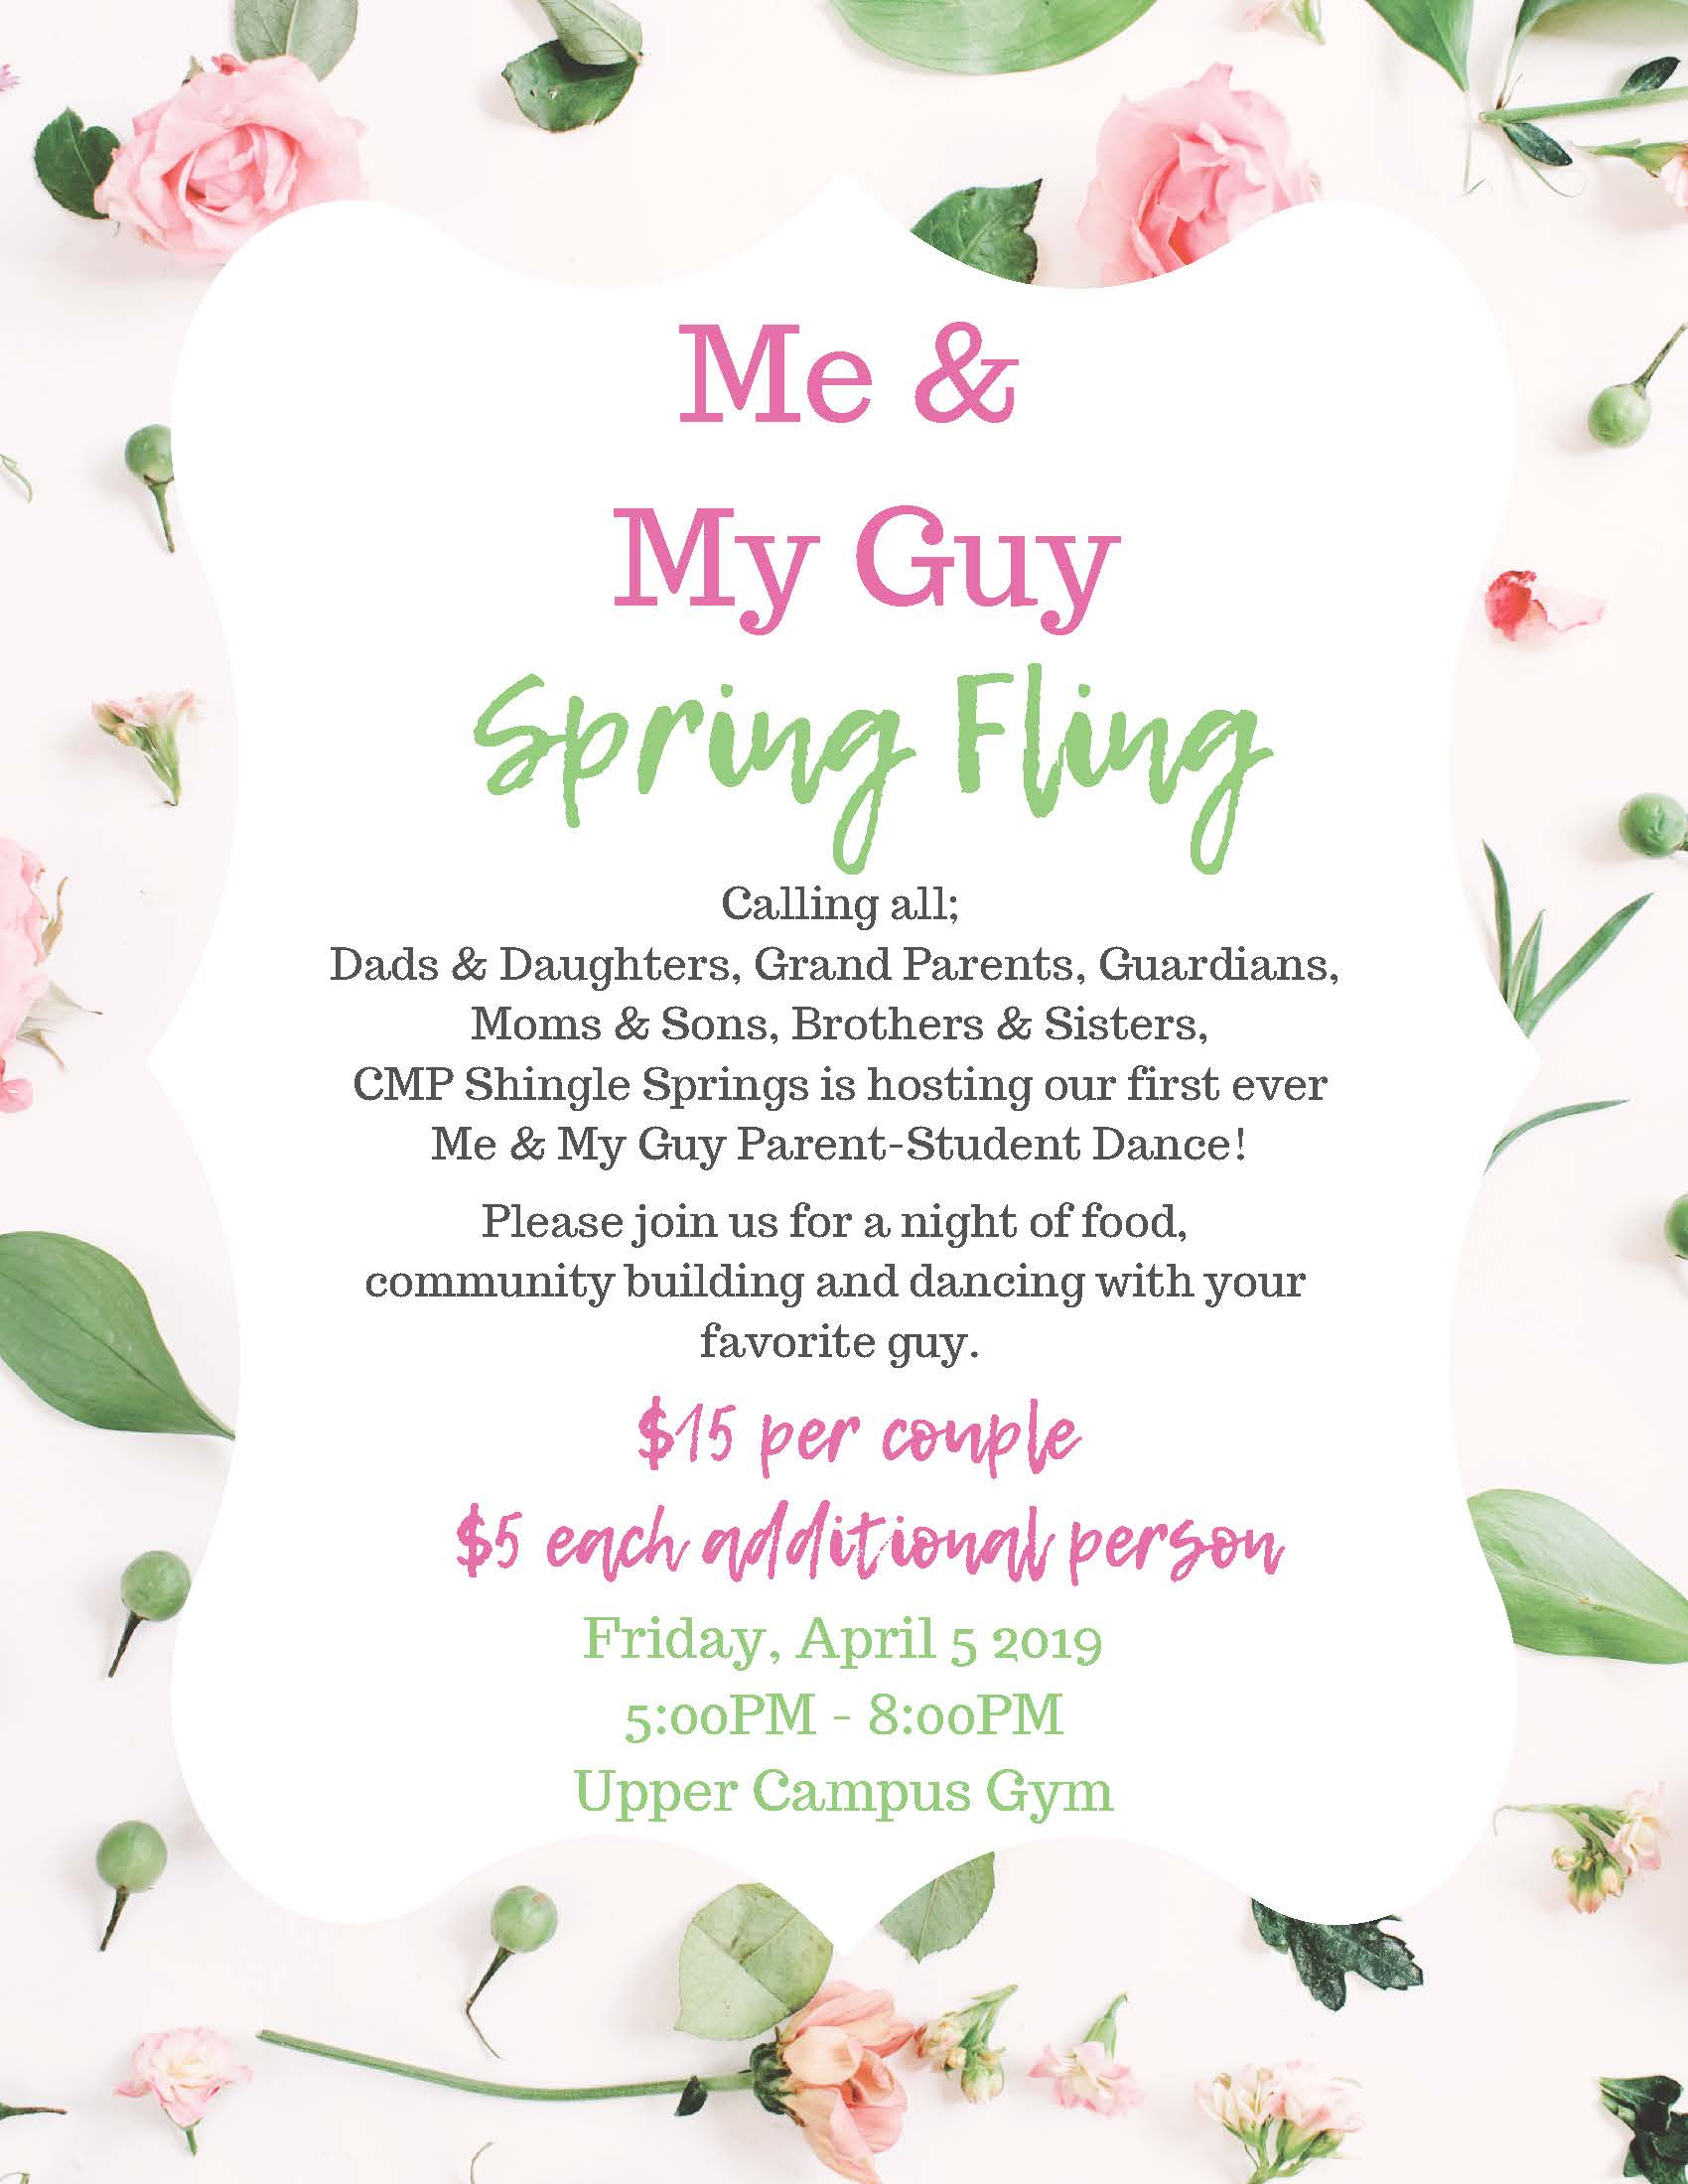 Me & My Guys SPring Fling Friday, April 5th from 5 to 8pm in the gym.